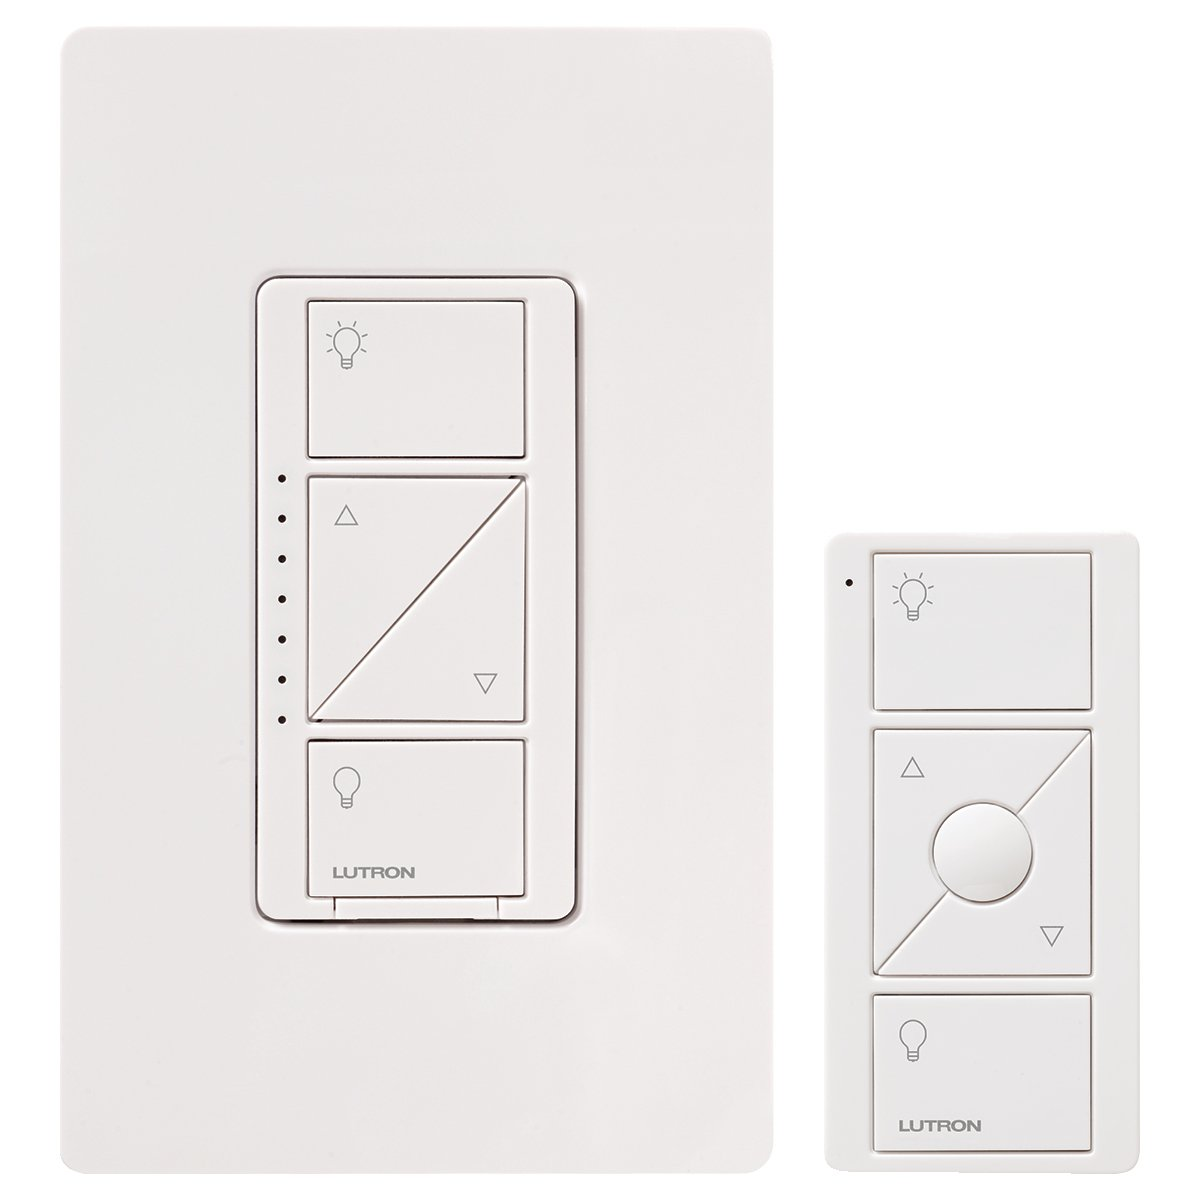 Lutron Caseta Wireless Smart Lighting Dimmer Switch And Remote Kit Mar Wiring Diagram For Wall Ceiling Lights P Pkg1w Wh C White Works With Alexa Switches